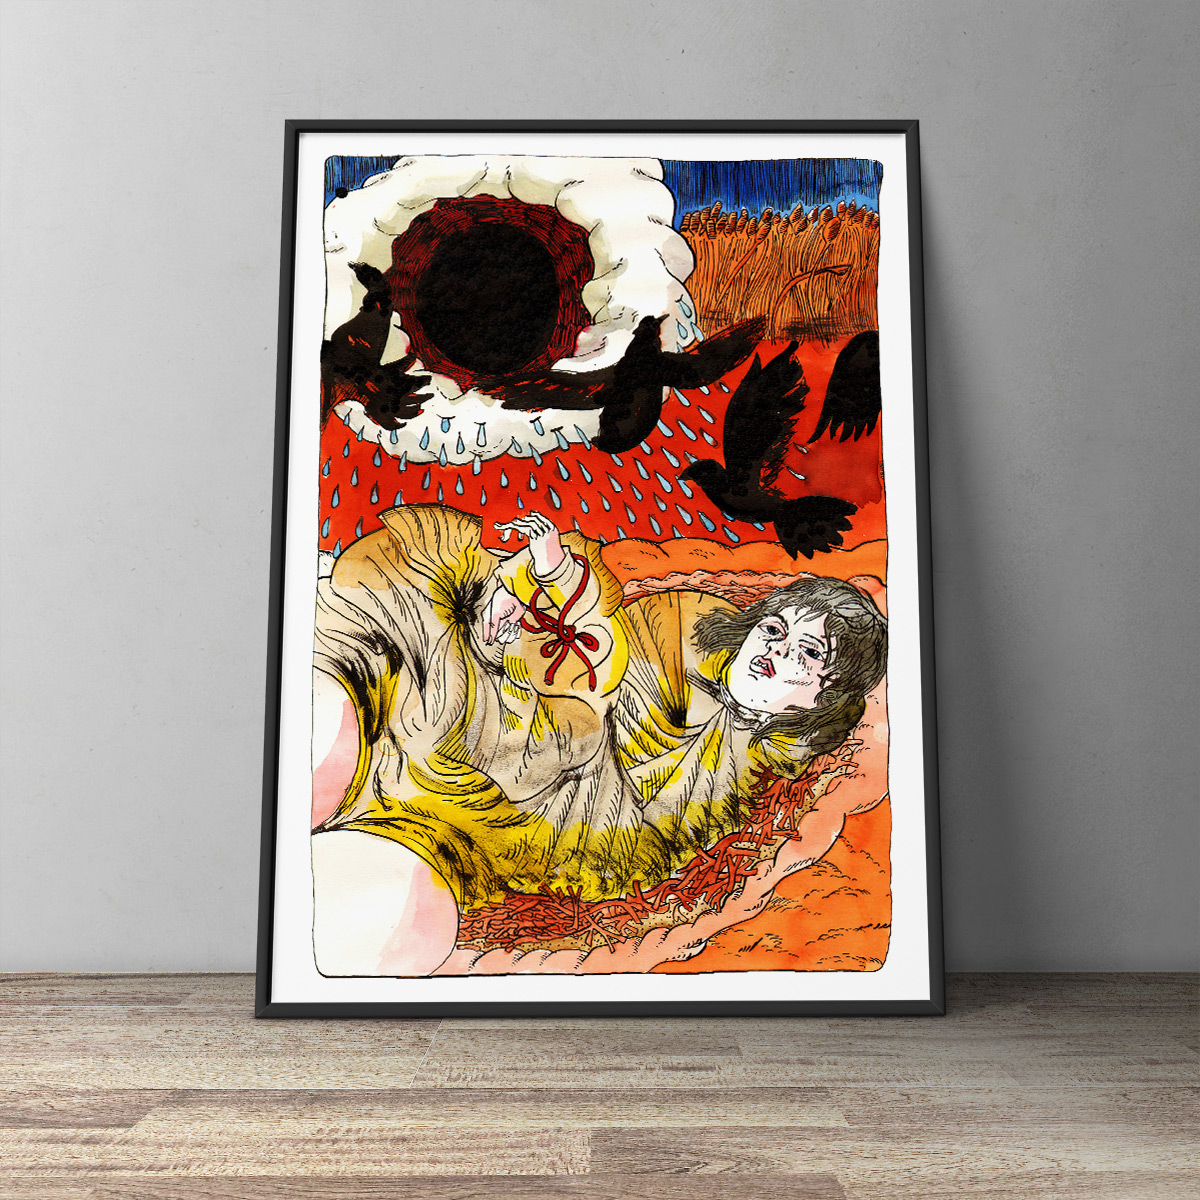 art-prints, gliceé, animal, figurative, landscape, portraiture, bodies, movement, nature, wildlife, black, blue, red, yellow, ink, paper, atmosphere, birds, contemporary-art, danish, decorative, design, interior, interior-design, modern, modern-art, nordic, posters, prints, scandinavien, scenery, Buy original high quality art. Paintings, drawings, limited edition prints & posters by talented artists.